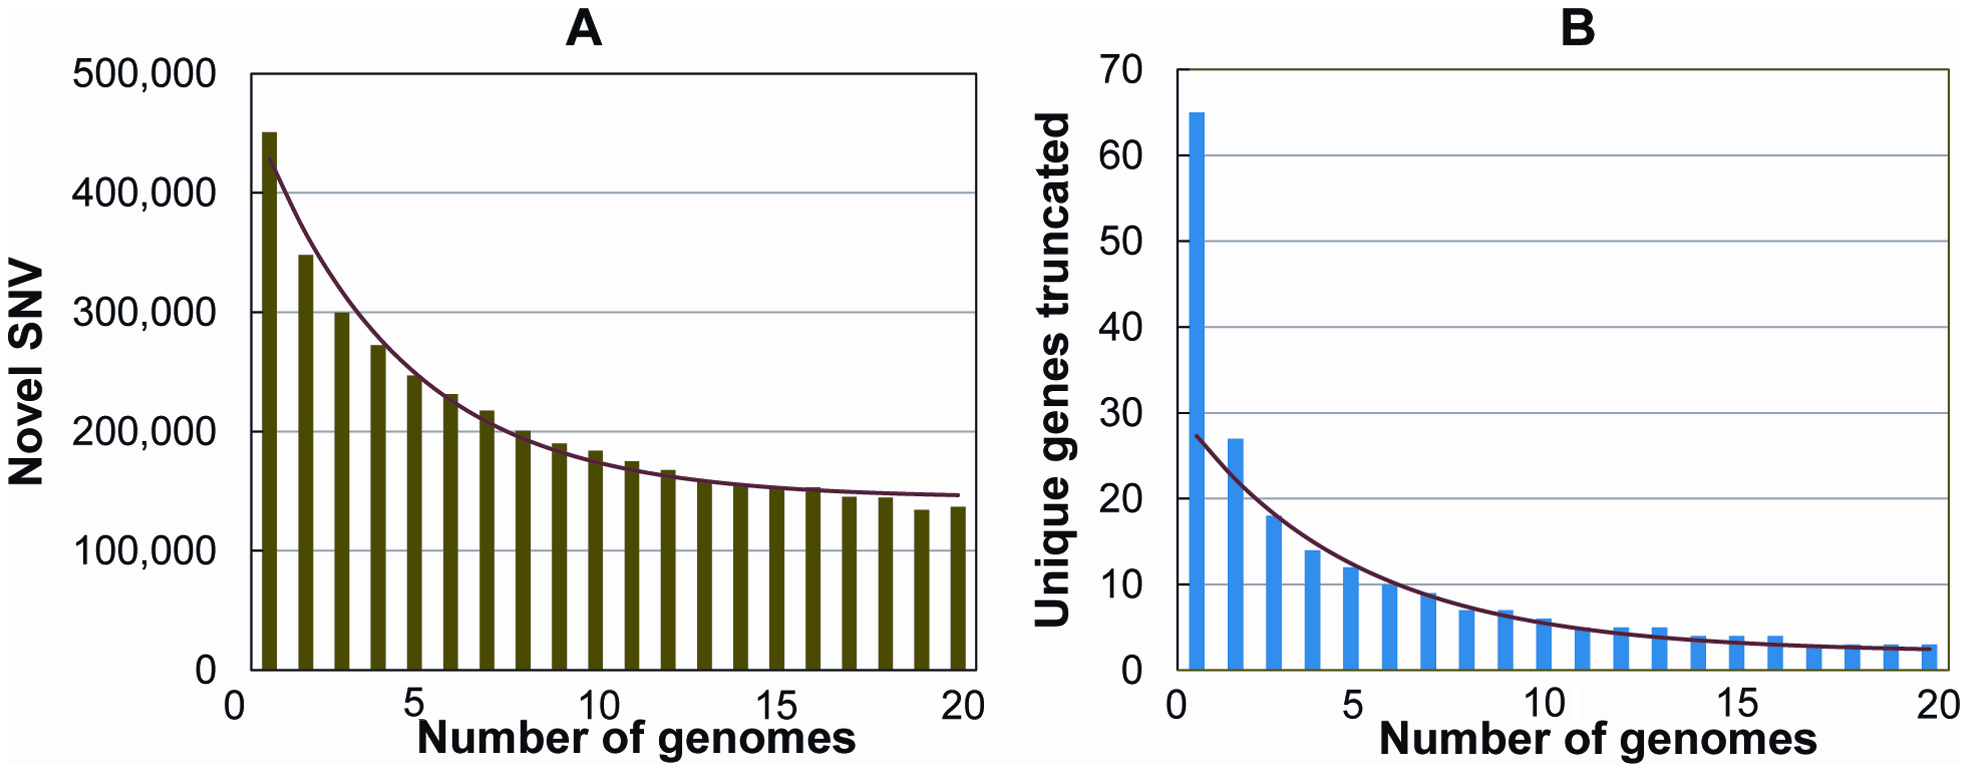 Number of novel SNVs and novel knocked-out genes as the number of genomes increases.